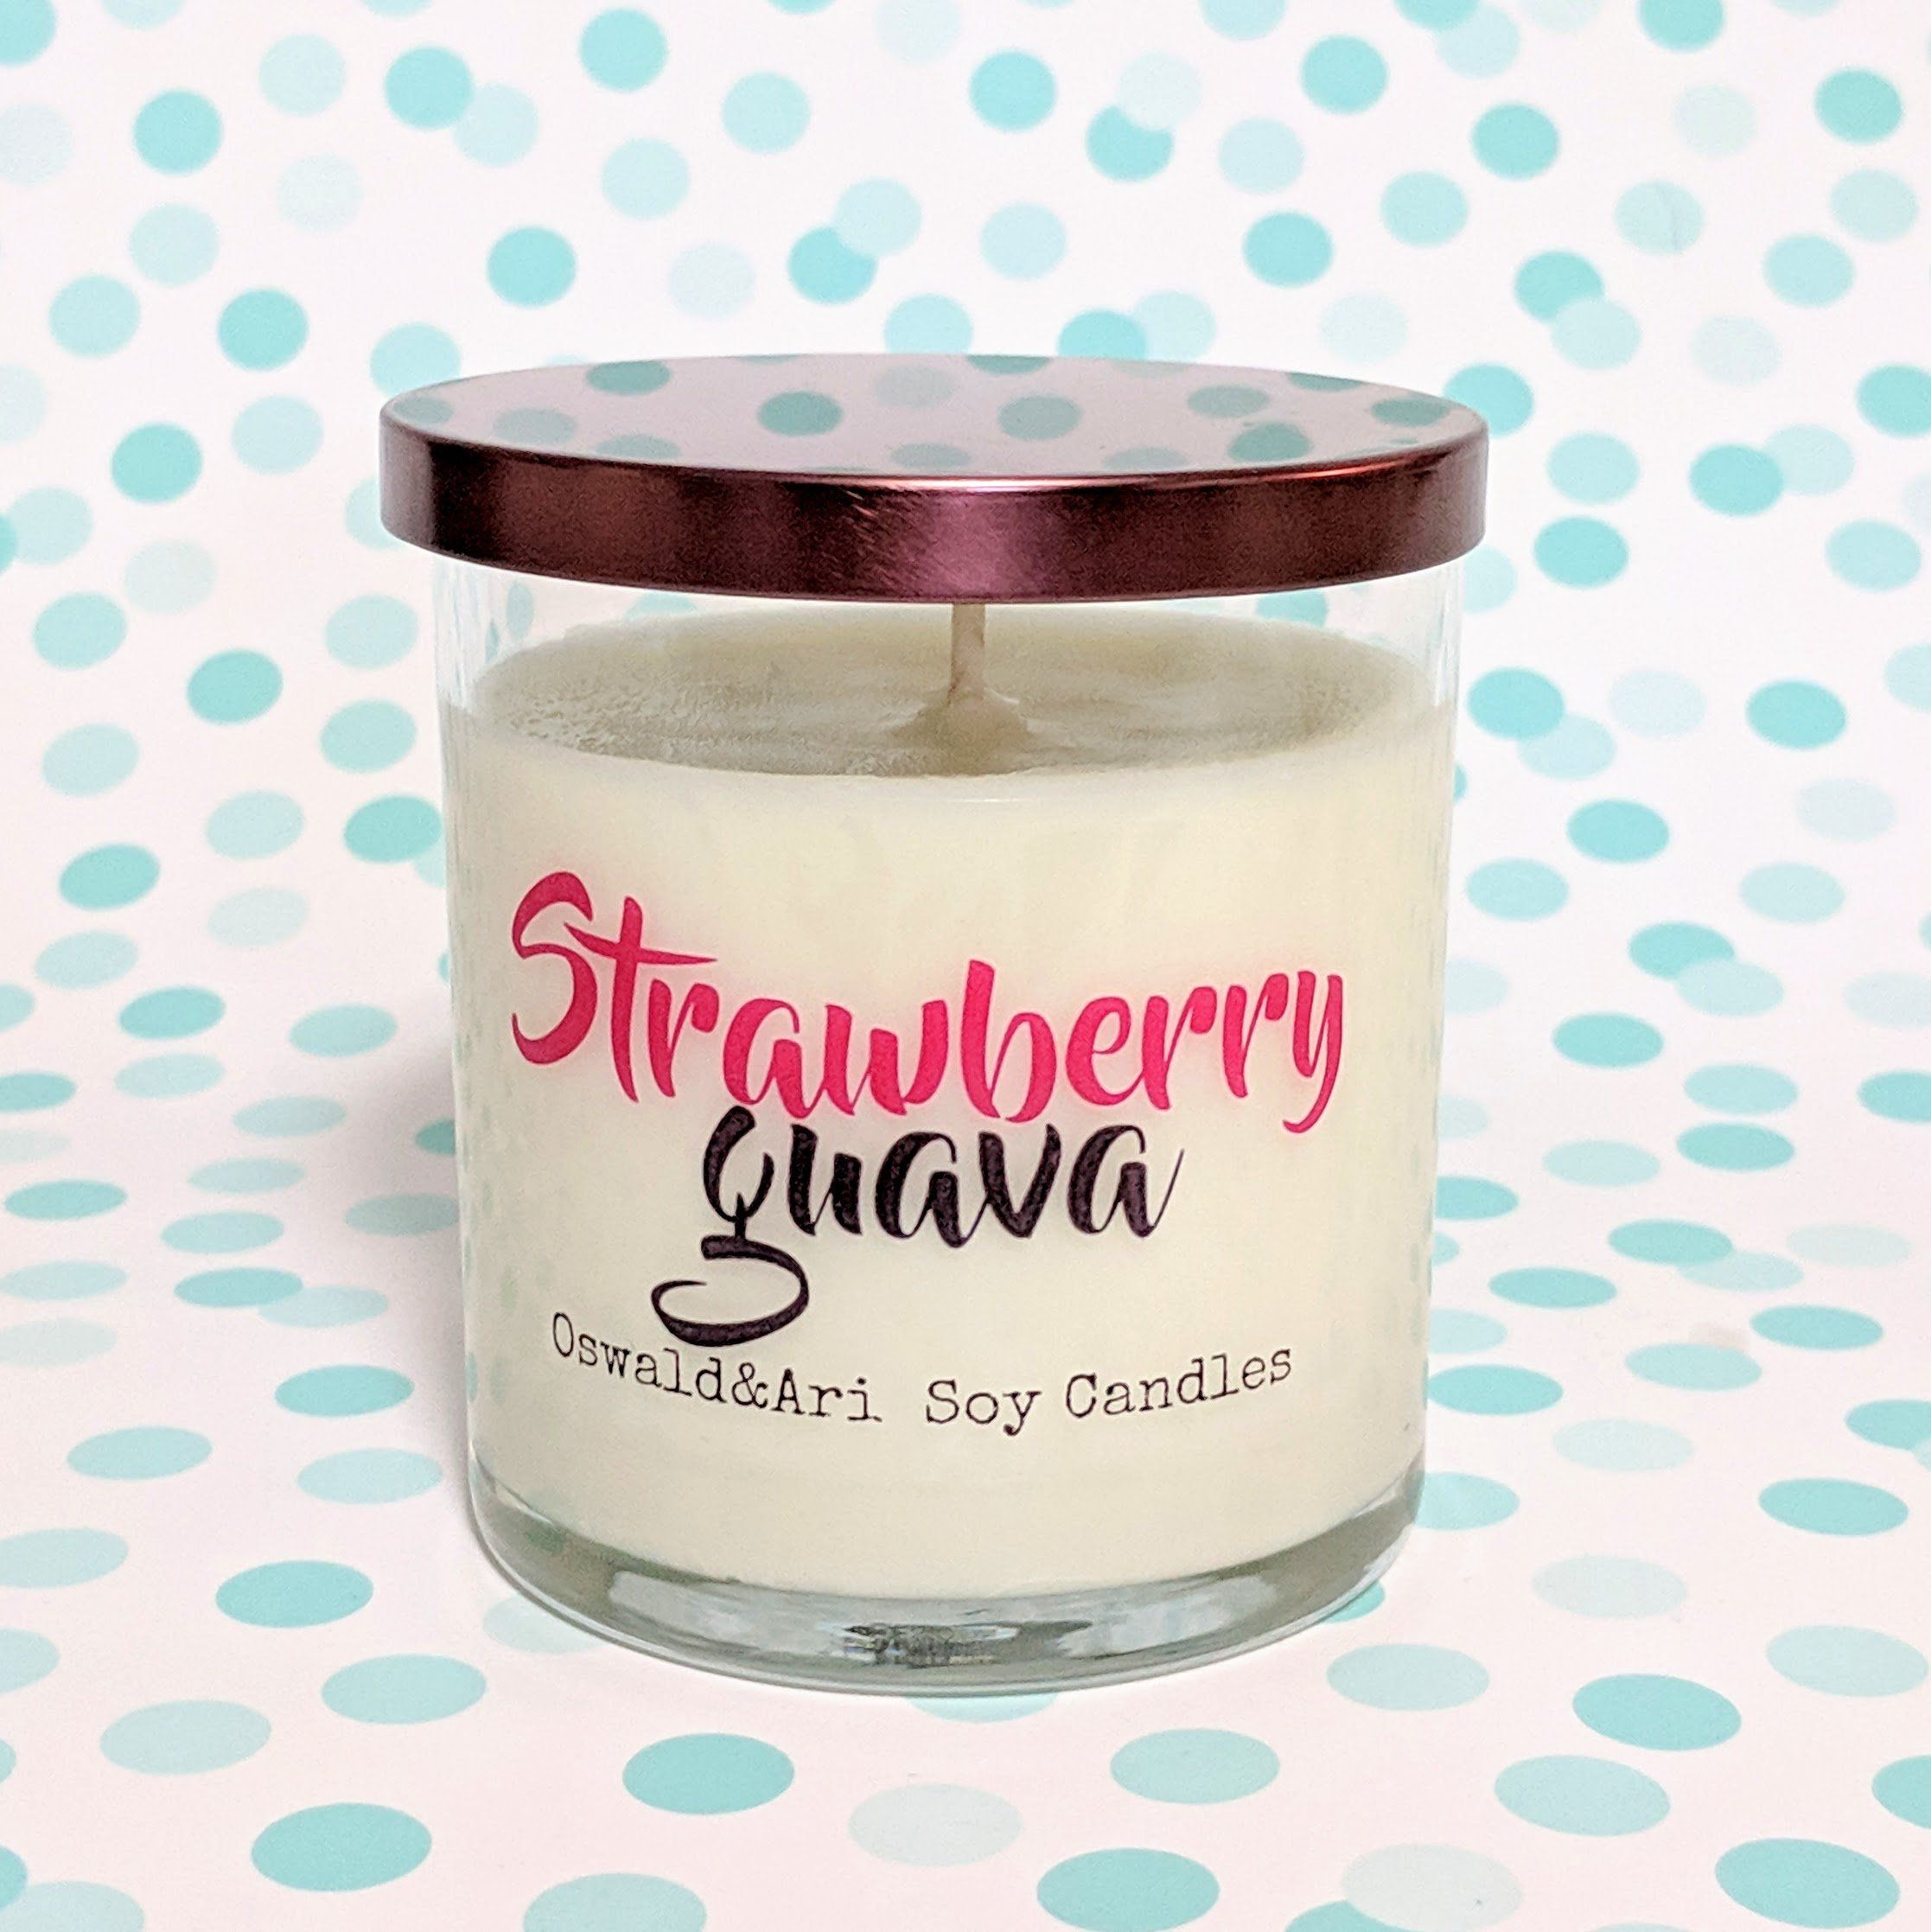 Strawberry Guava Scented Candle